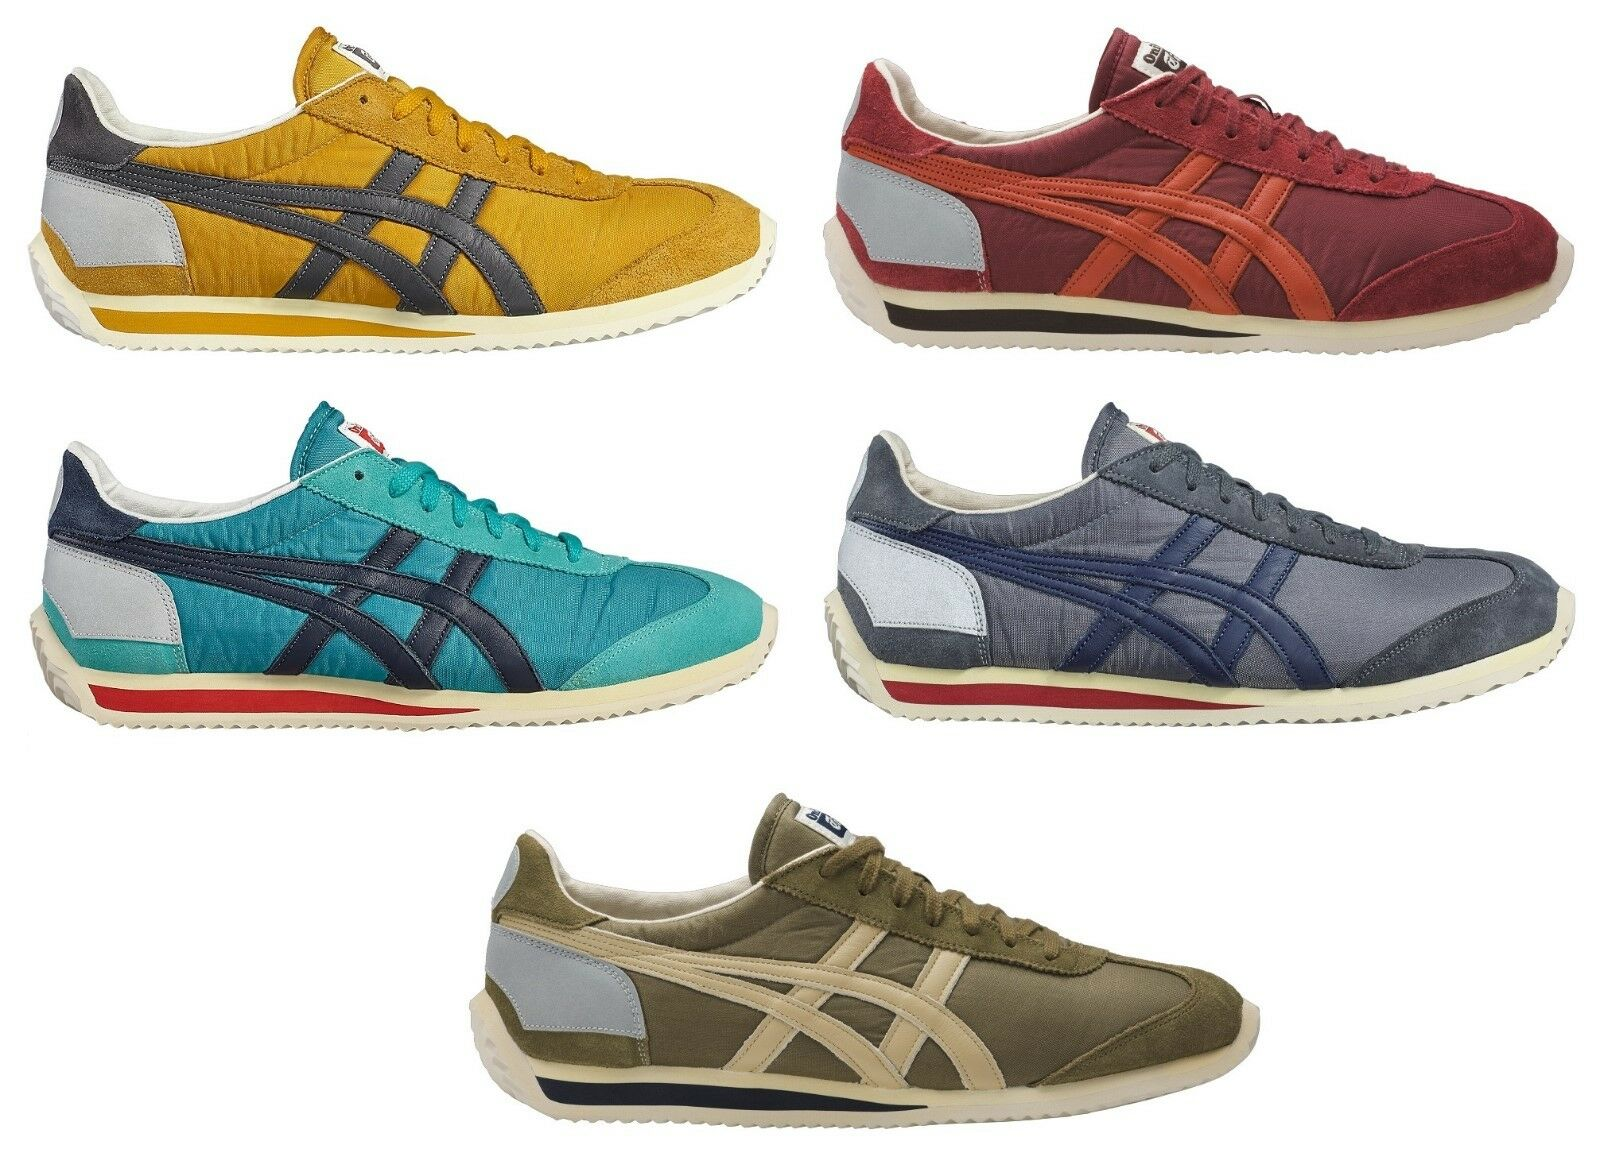 SHOES ASICS ONITSUKA TIGER CALIFORNIA 78 - MEXICO 66 LIMITED EDITION VINTAGE